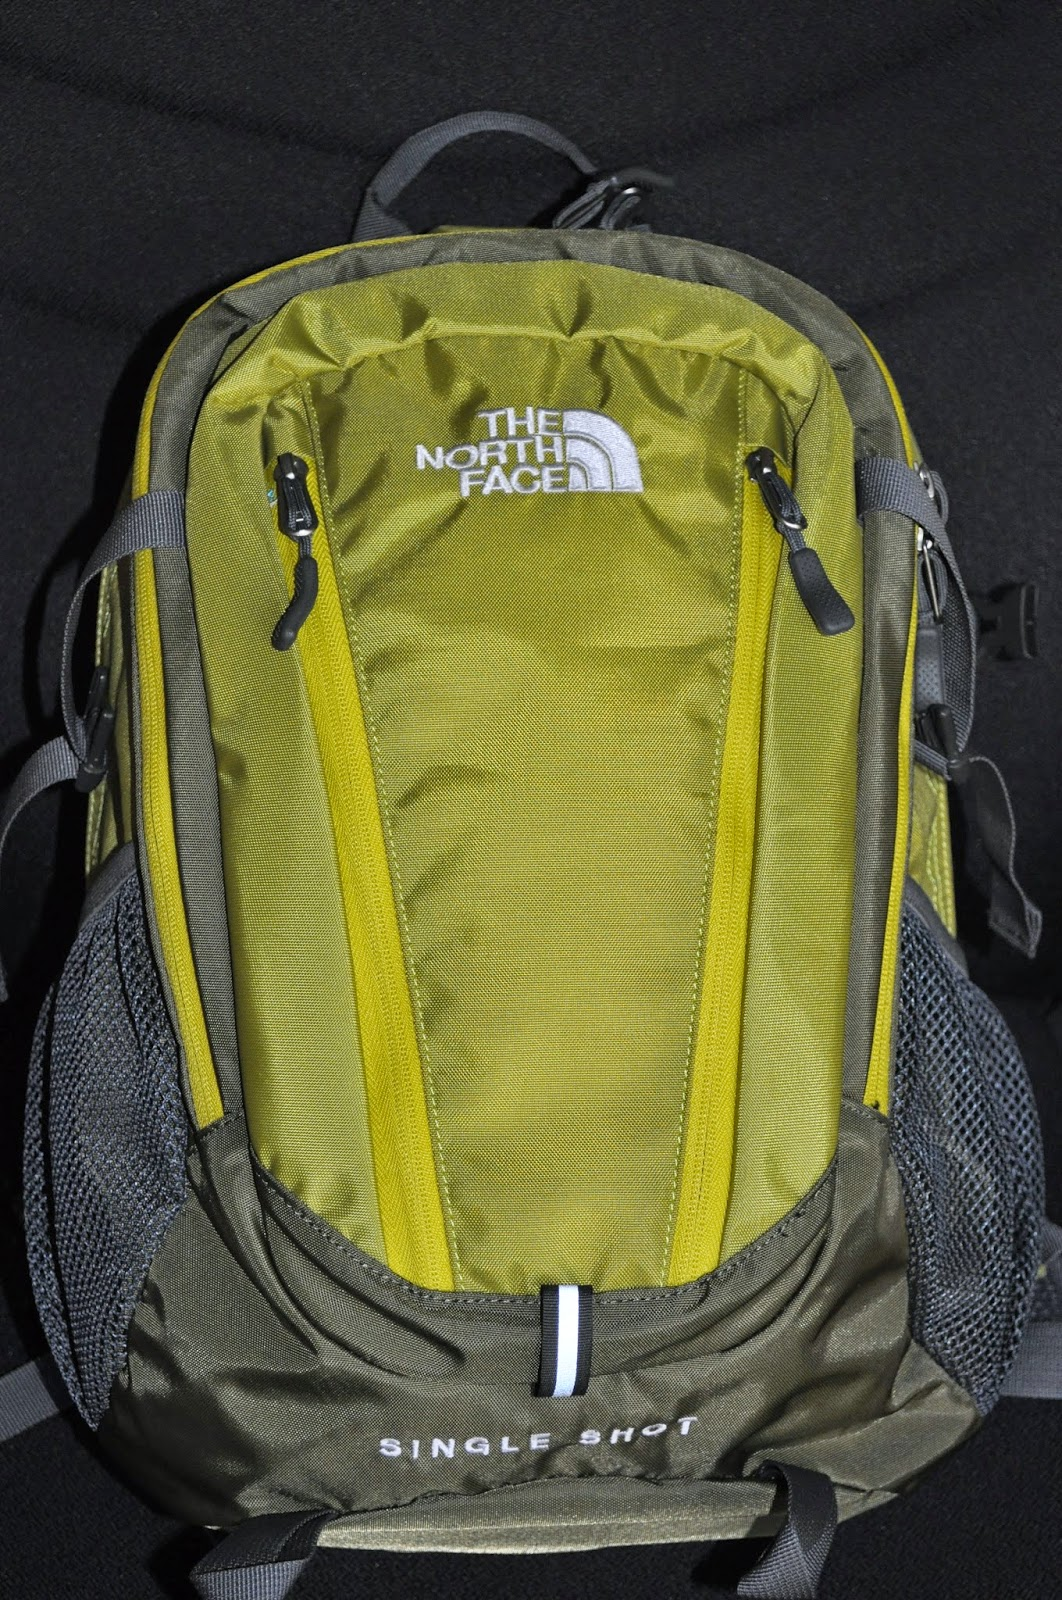 d490a0da4 Shop For All: NorthFace Single Shot backpack 20L